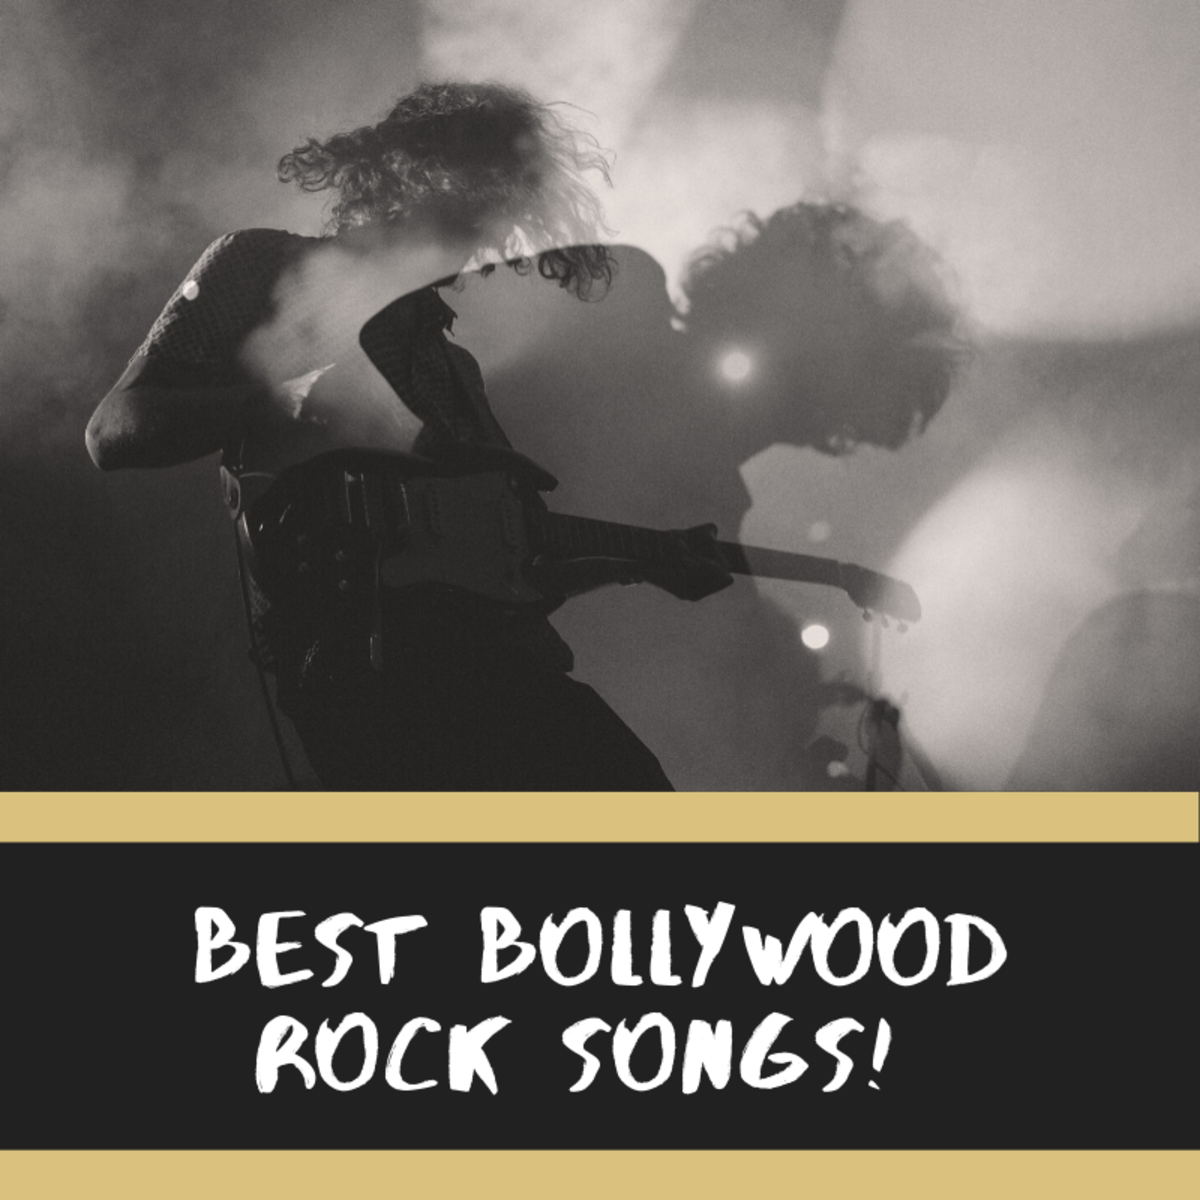 As Bollywood changes, more Western influences are making their way into the industry. Below you'll find the very best rock songs that Bollywood has to offer.